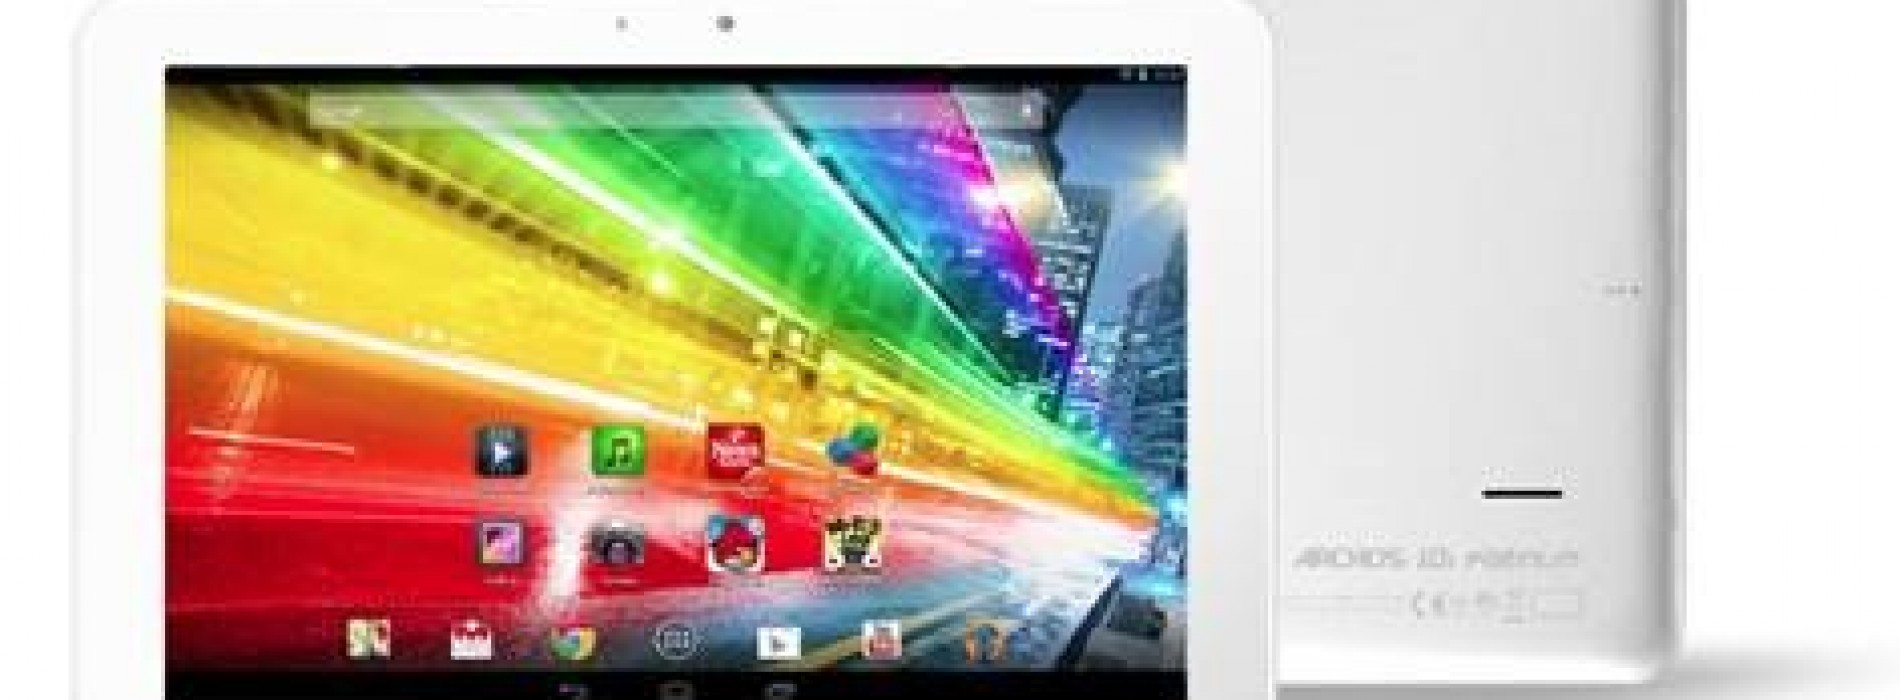 Archos debuts new 'Platinum' line of Android tablets